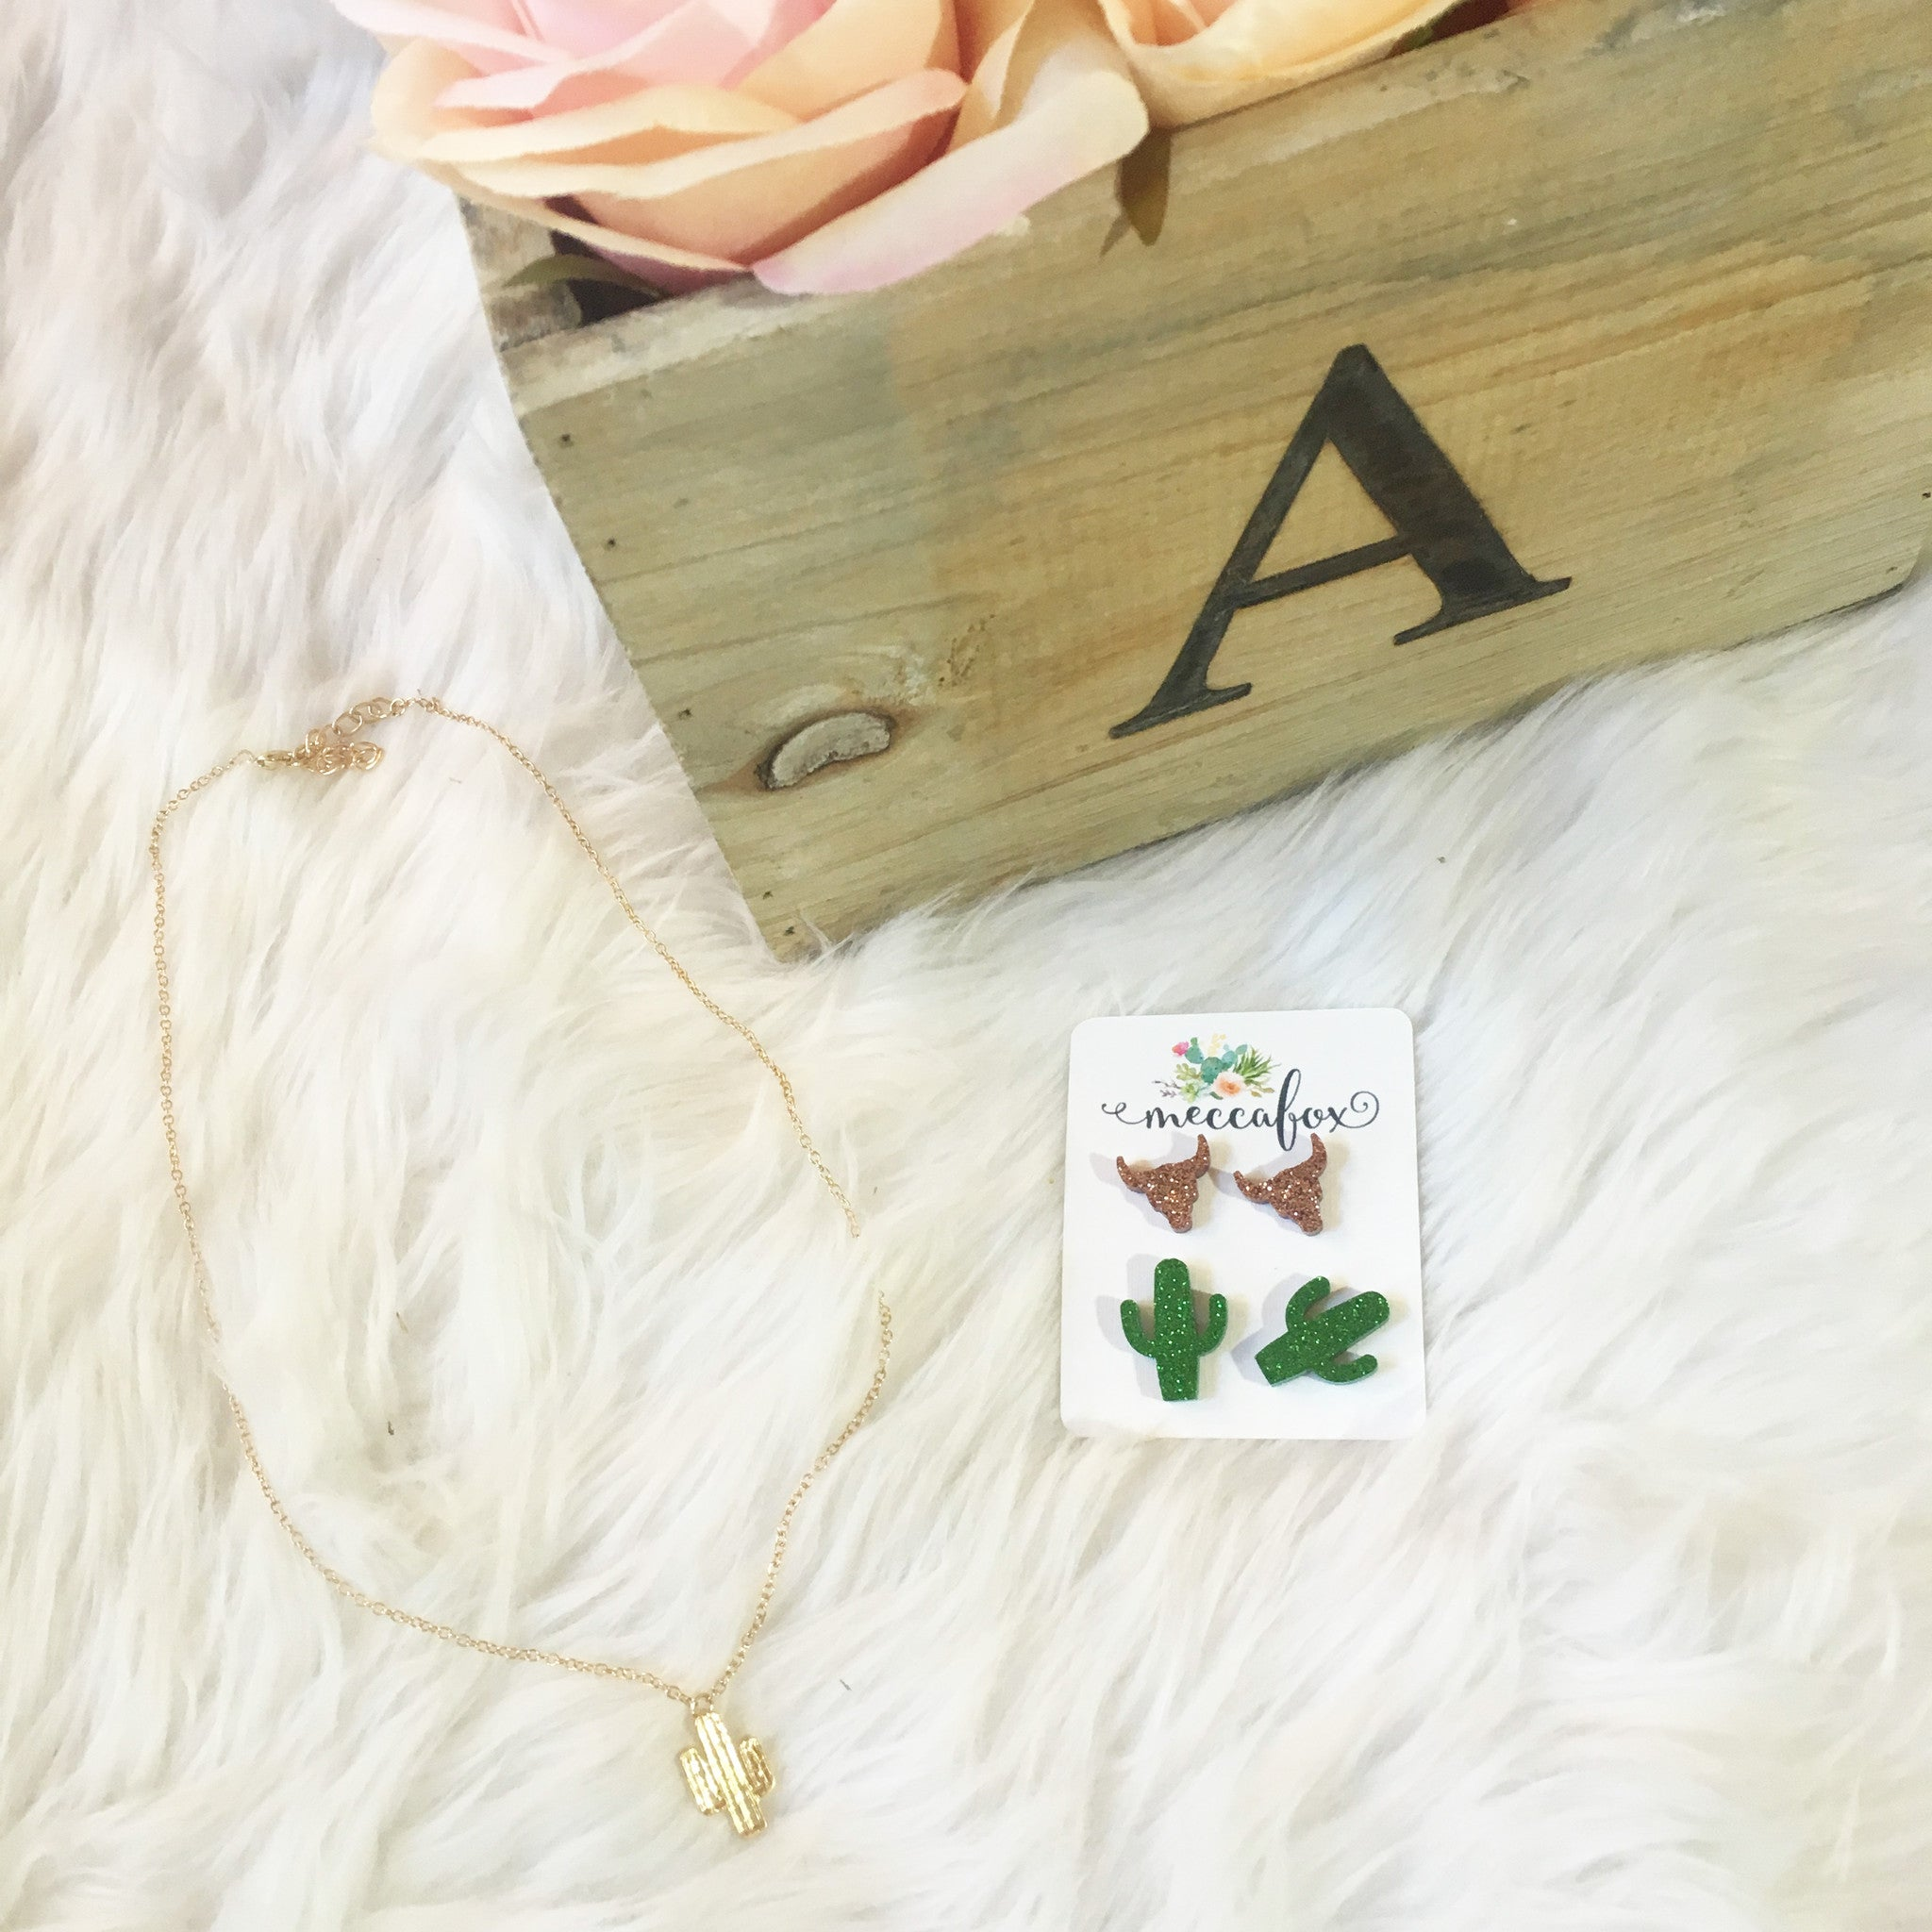 THE EYES OF TEXAS NECKLACE - Annalee Rose Boutique